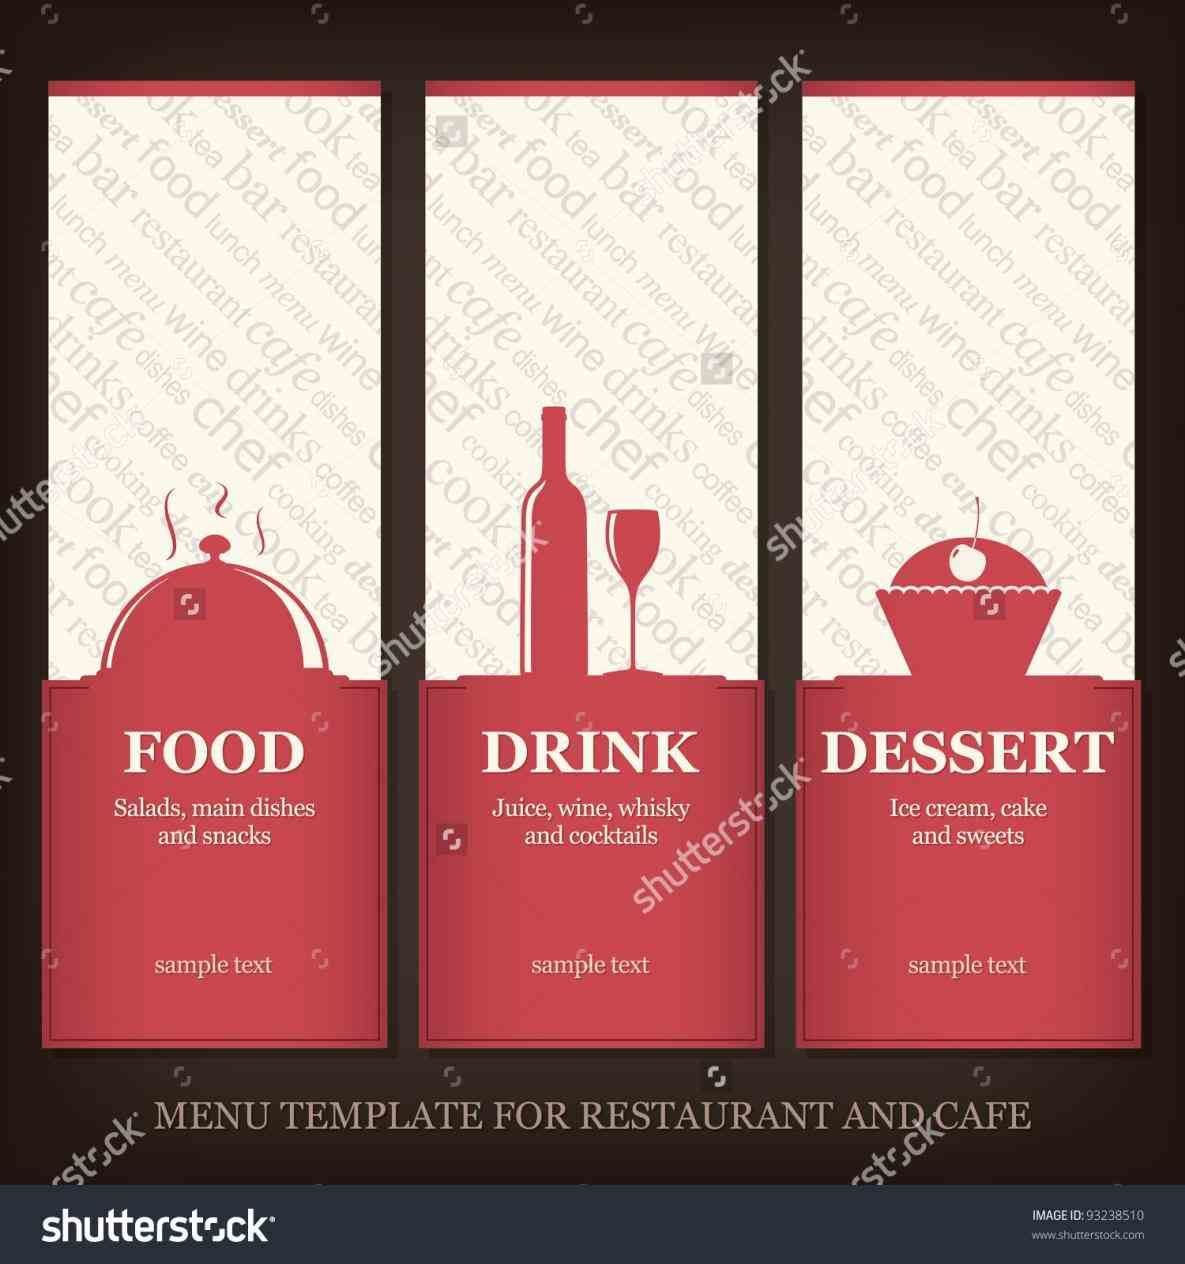 Cafe Graphic Menu Cafe Menu Templates Free Download Design